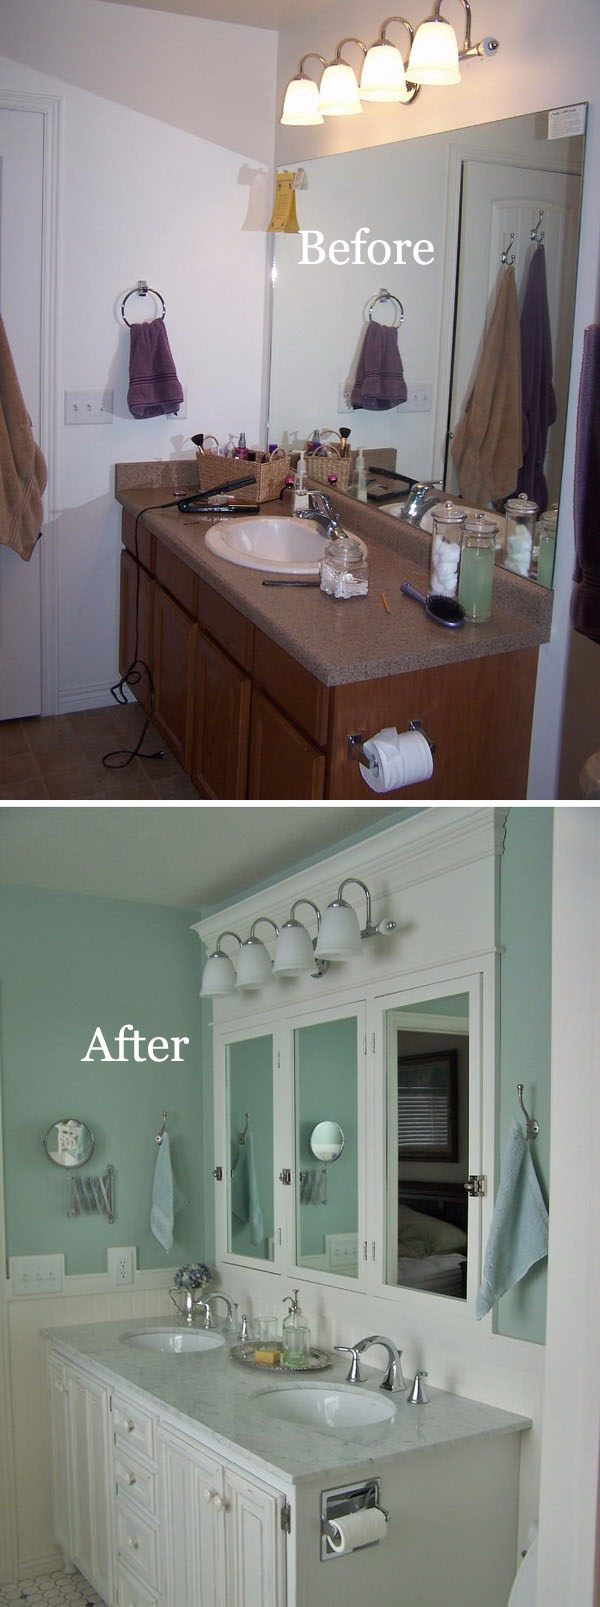 Master Bathroom Remodel With Blue Painted Walls.